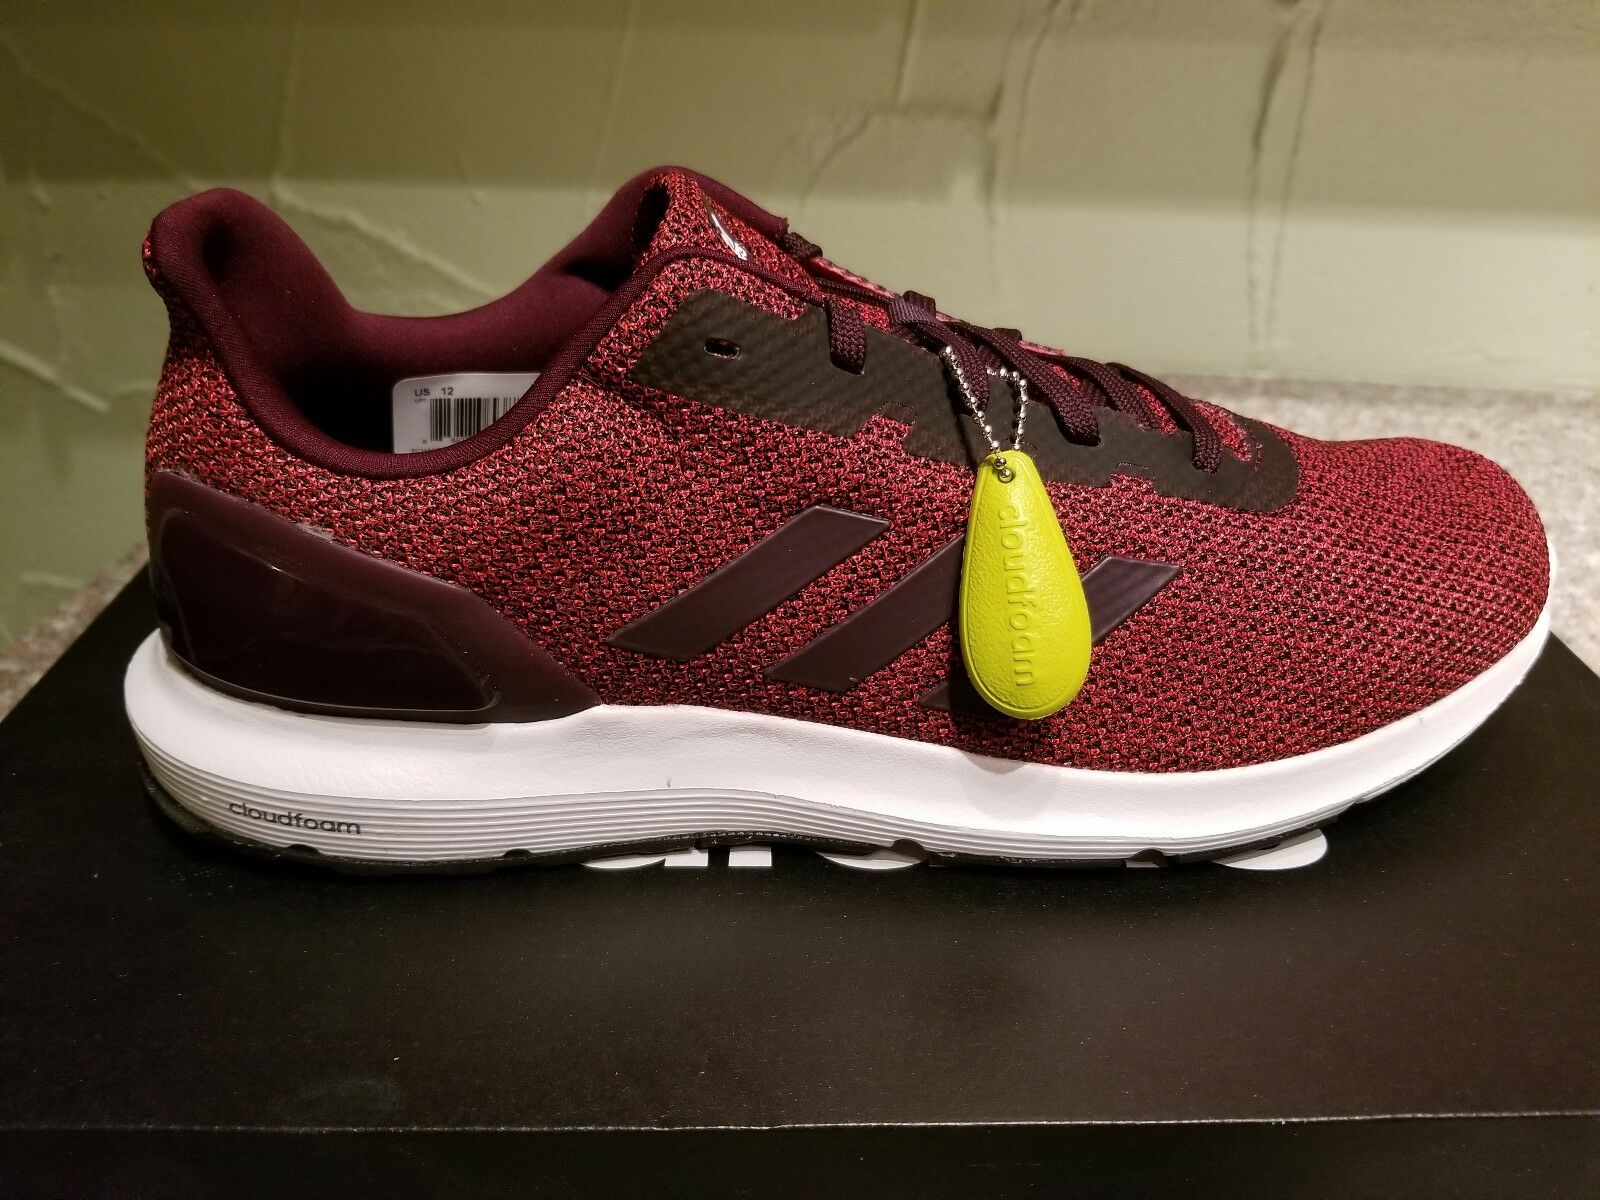 NEW ADIDAS SI MEN'S COSMIC 2 SI ADIDAS RUNNING SNEAKERS SHOES SIZE 11.5 4de1bd